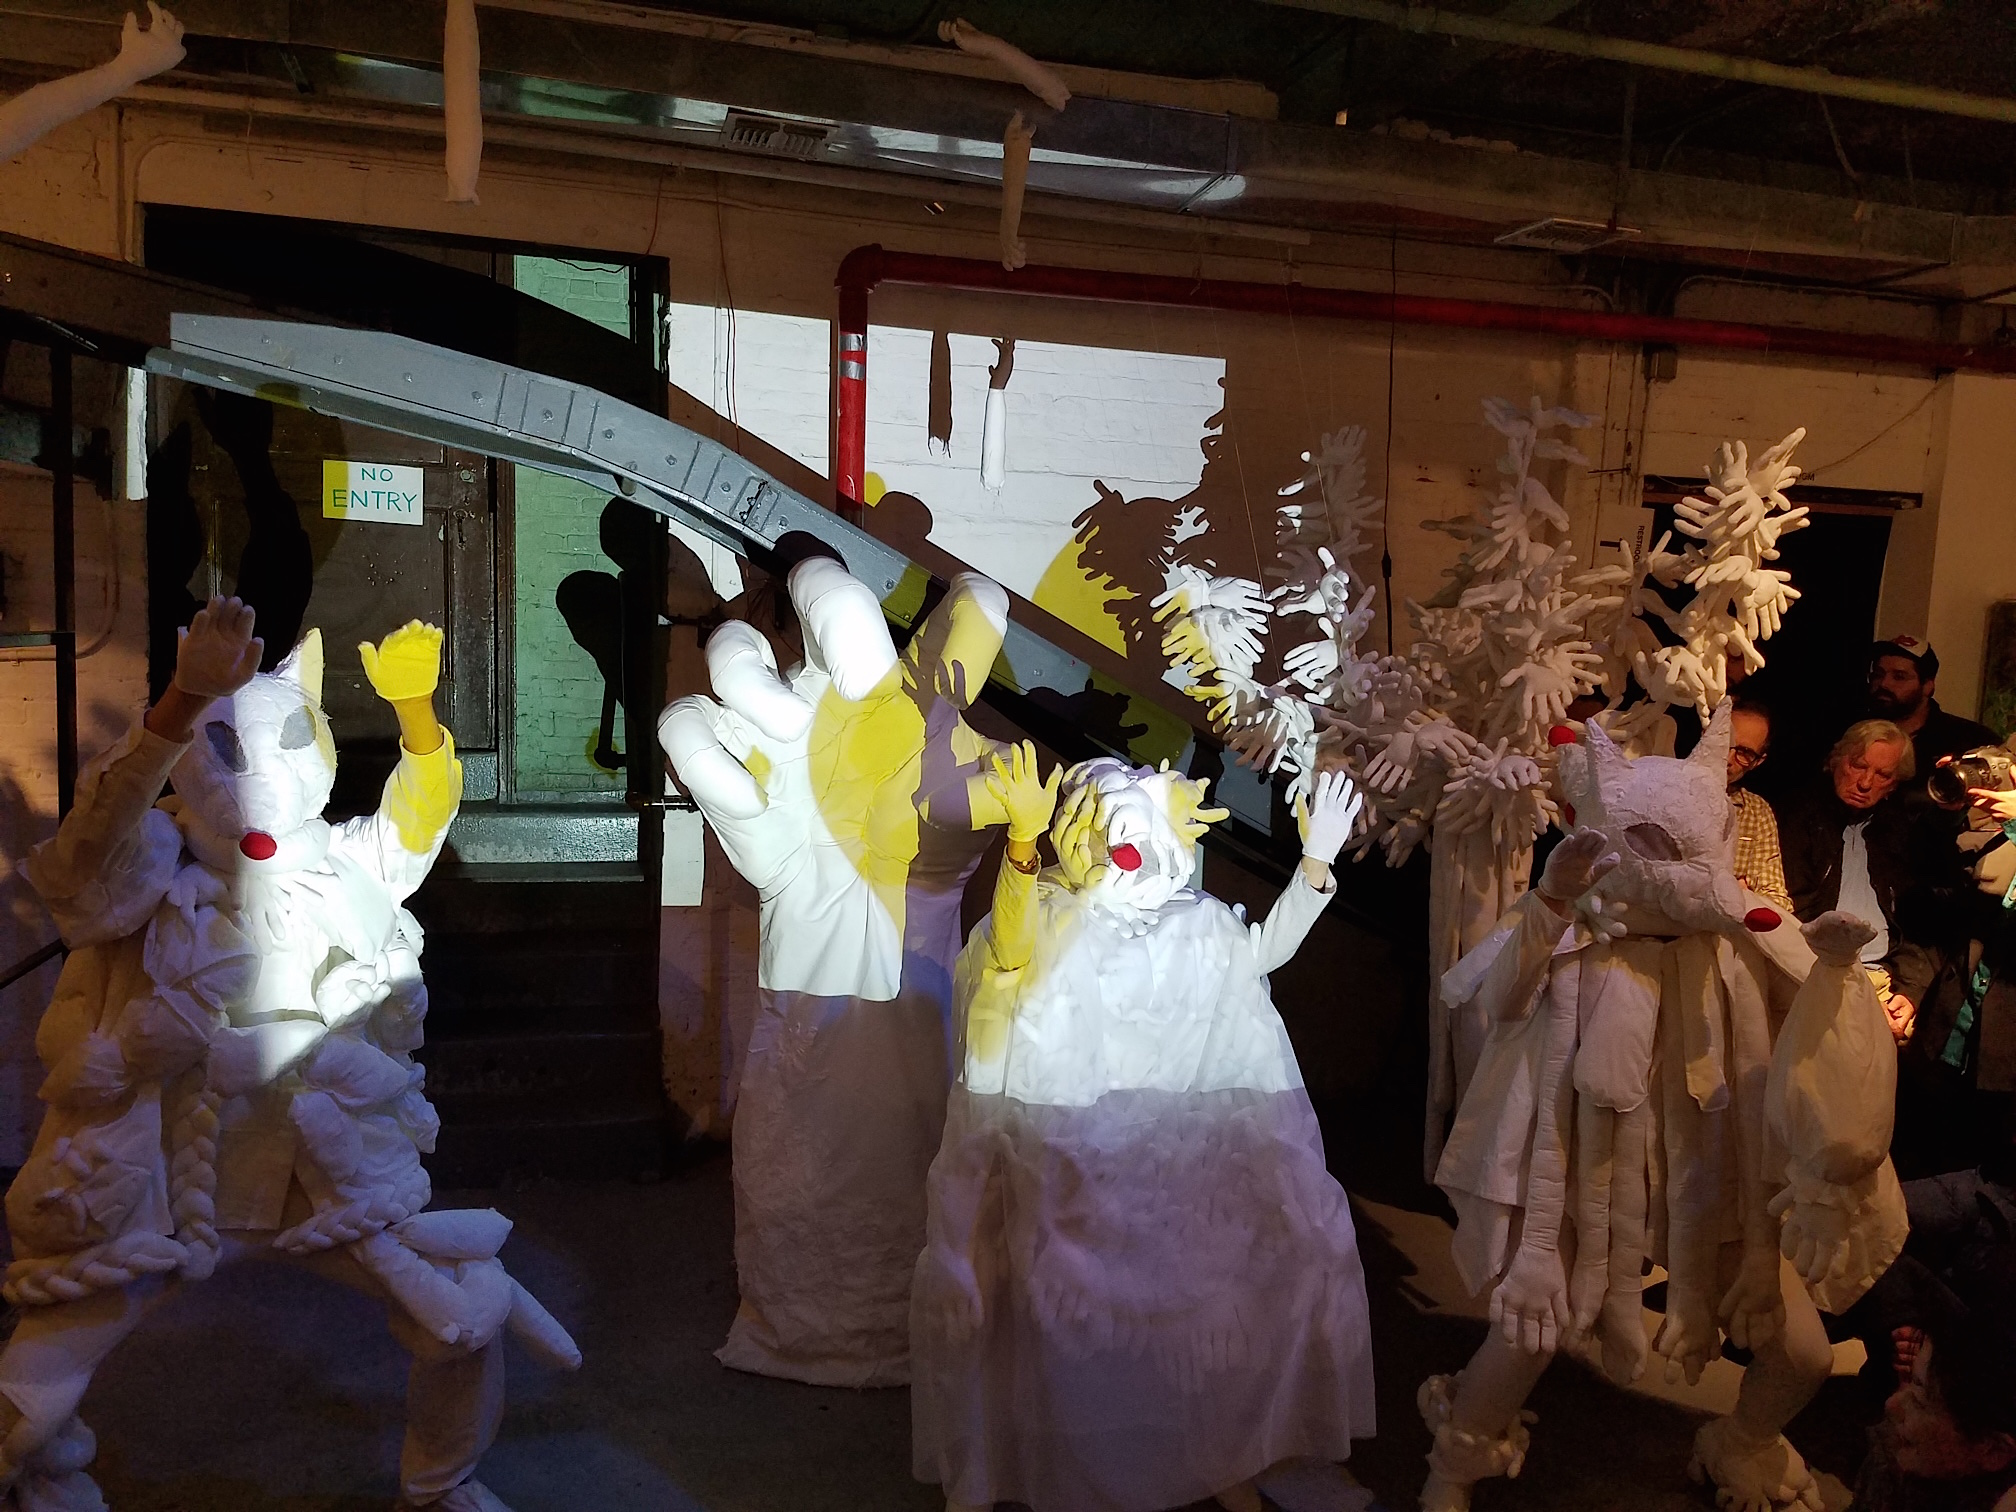 Parade -The Dreamland-, March 3rd, 2016, Flux Factory